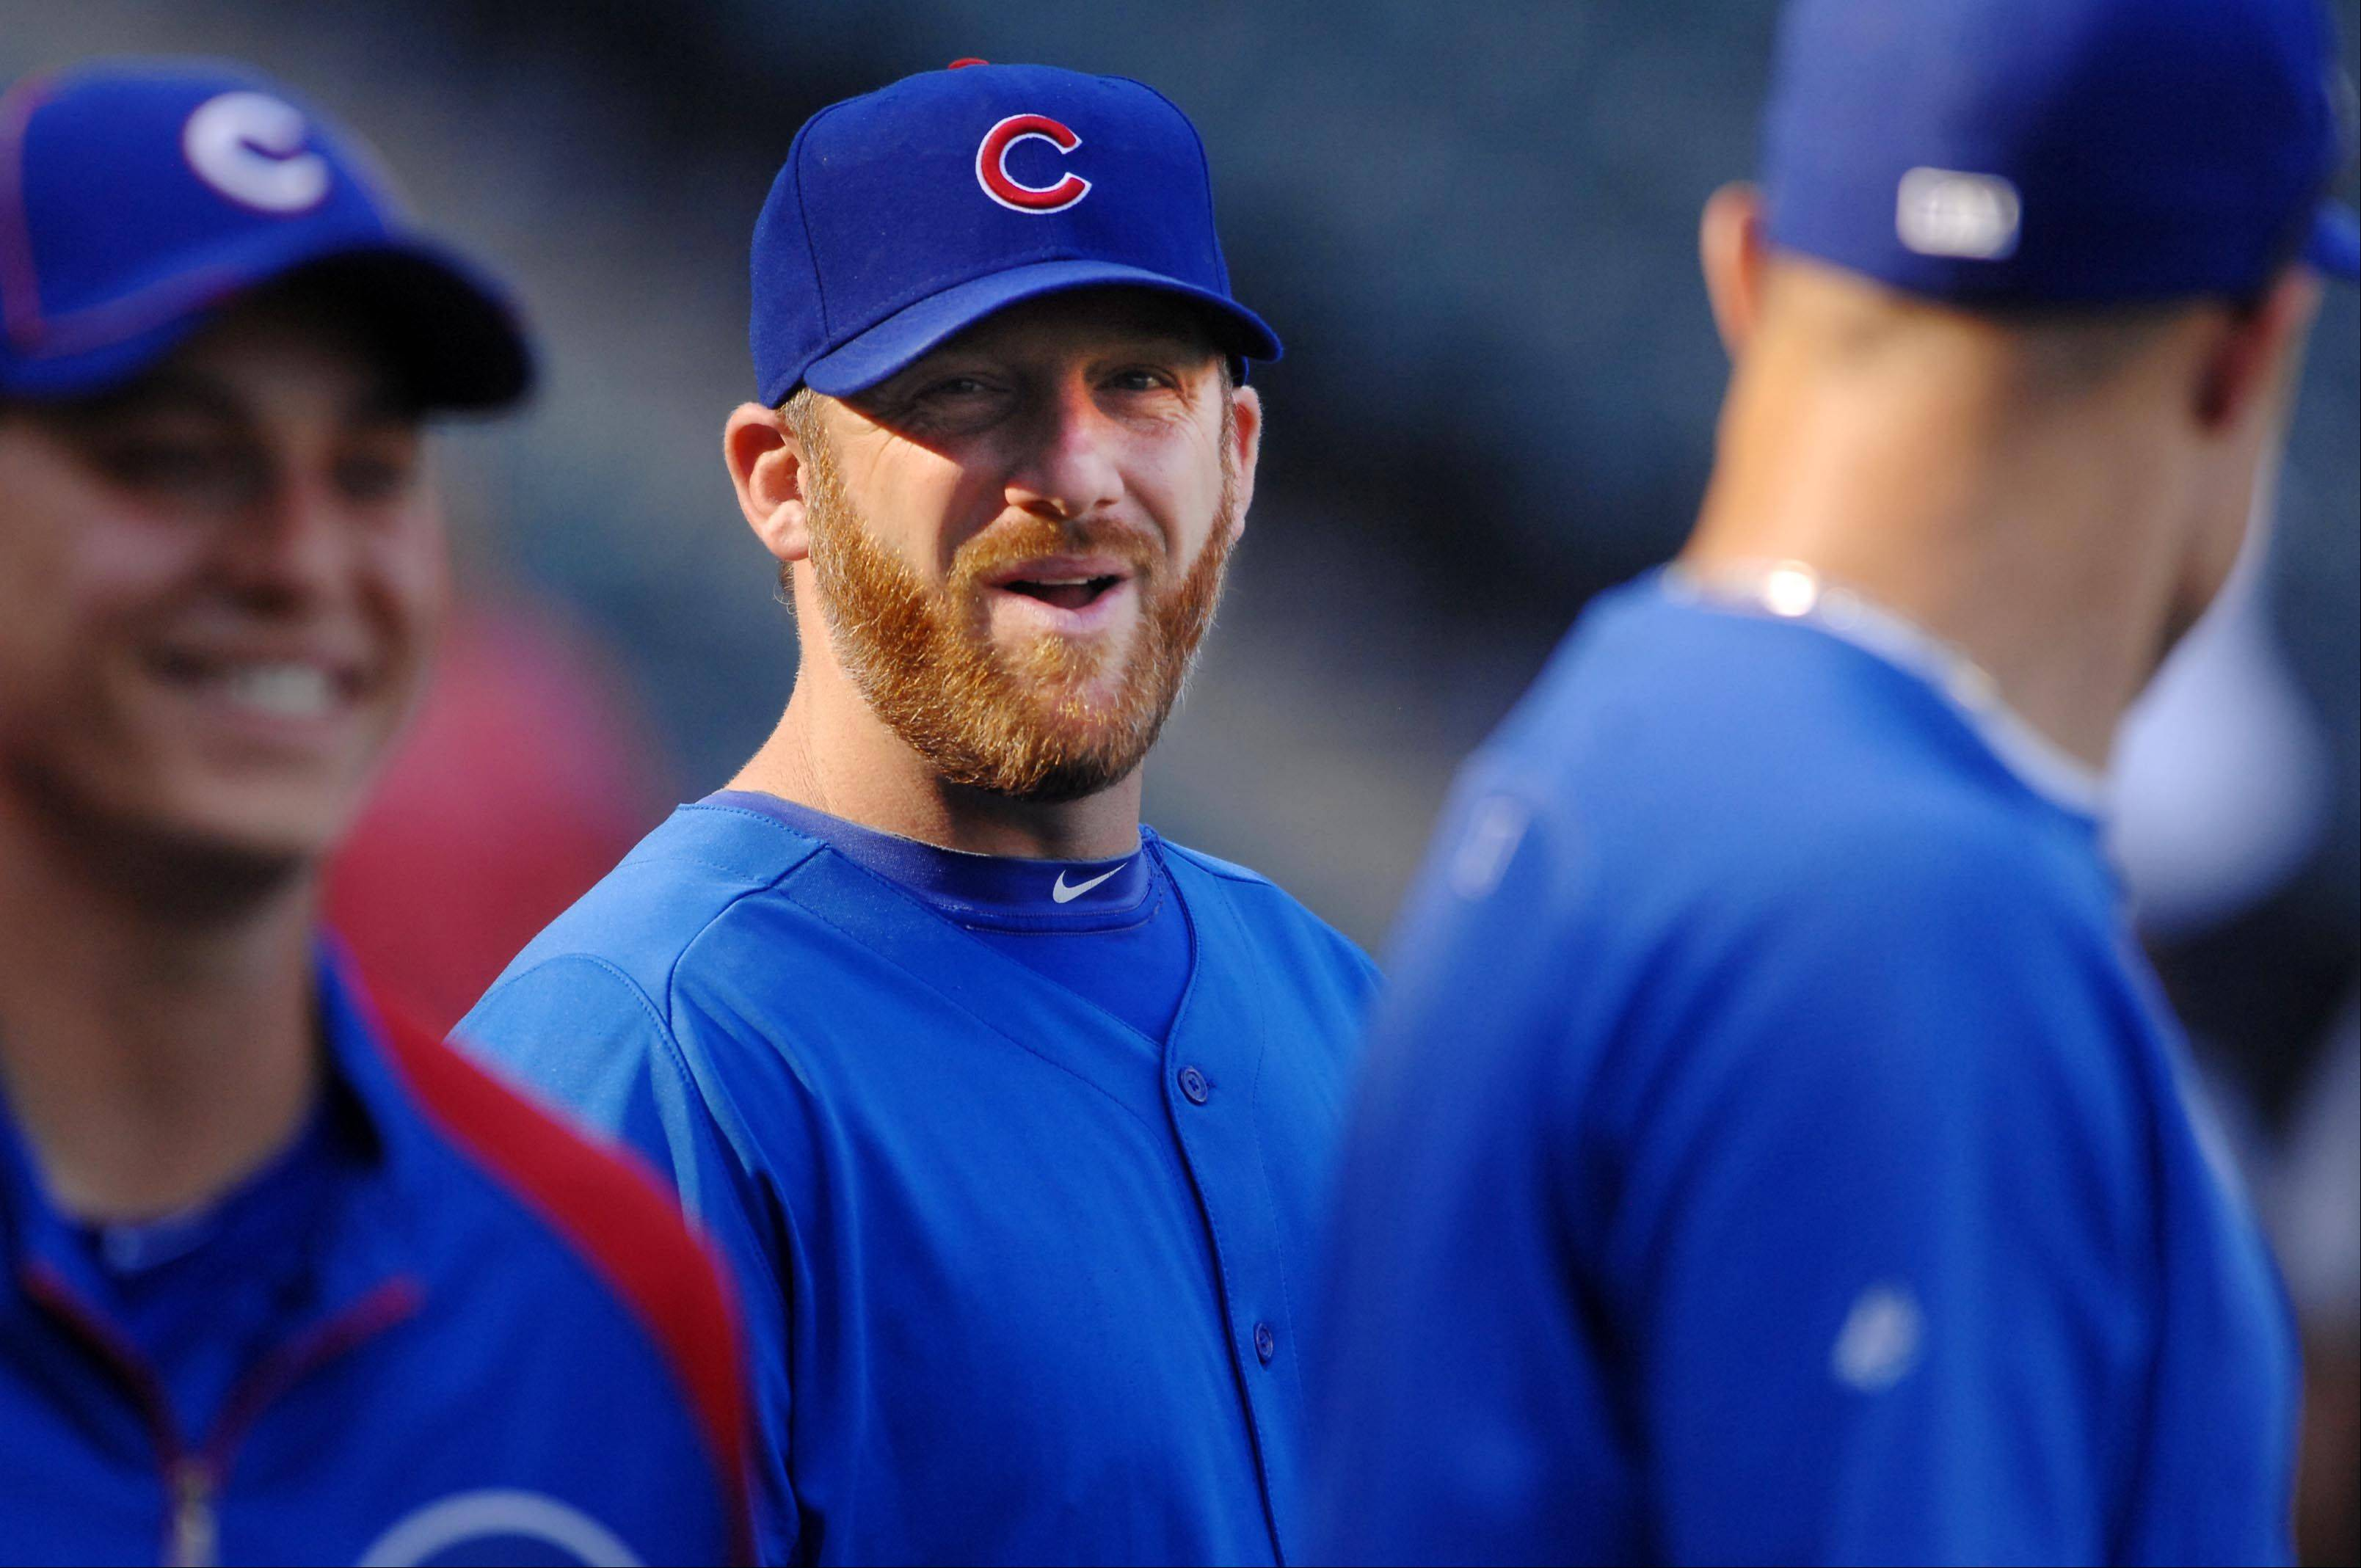 Chicago Cubs pitcher Ryan Dempster laughs with teammates before the game.